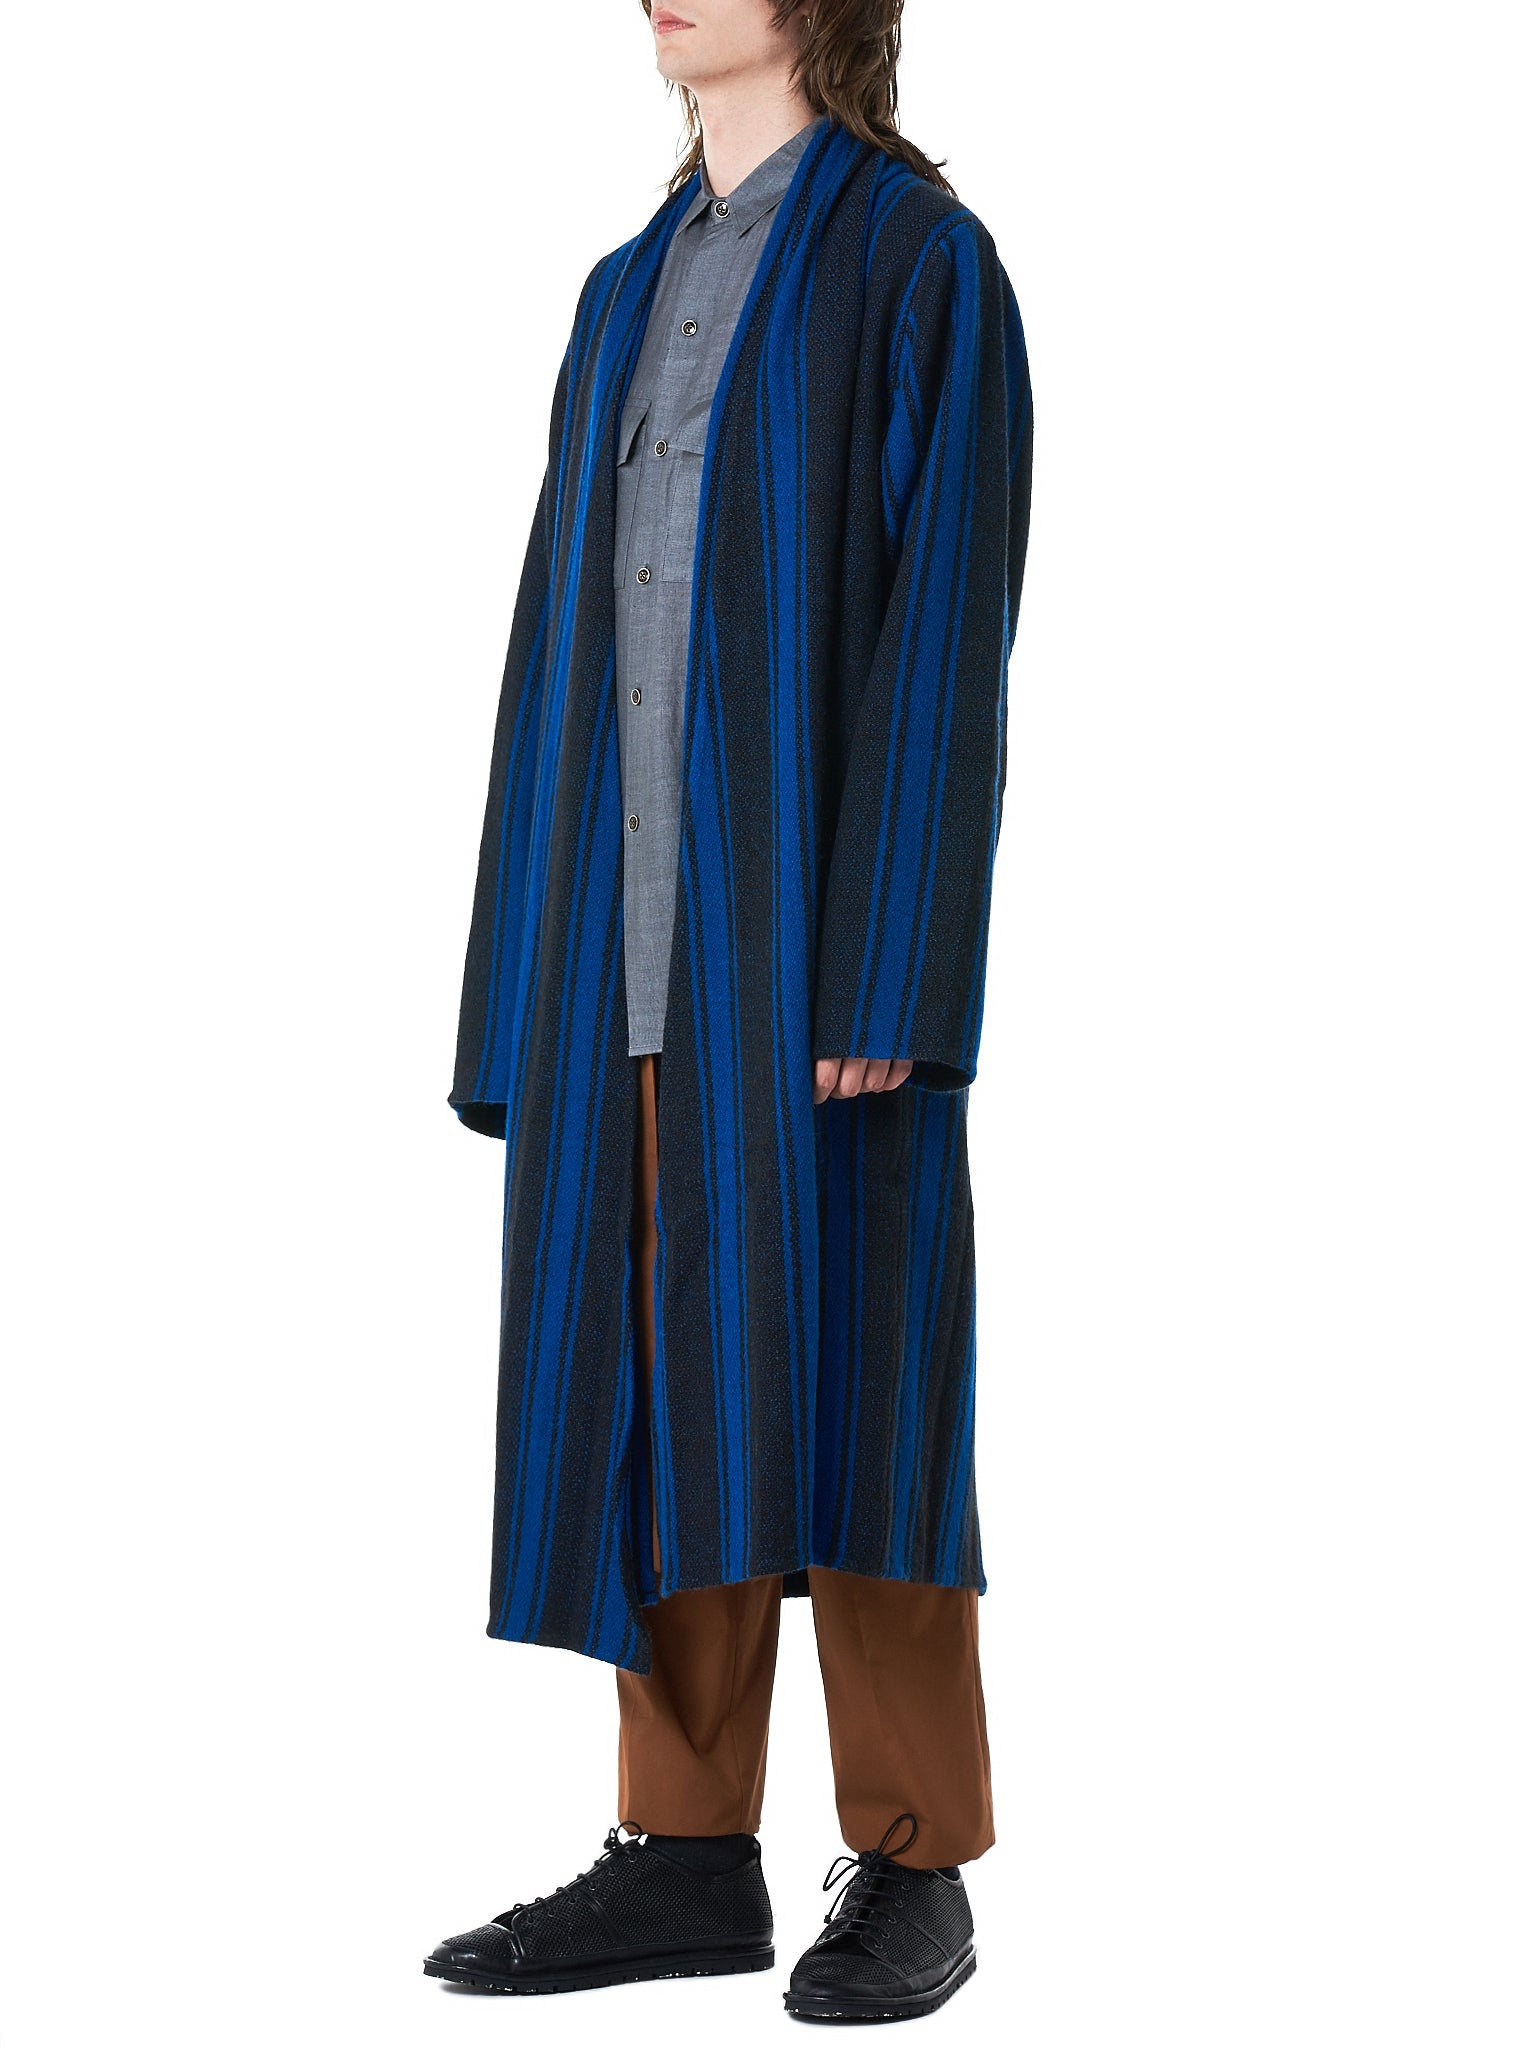 Denis Colomb Cardigan - Hlorenzo Side